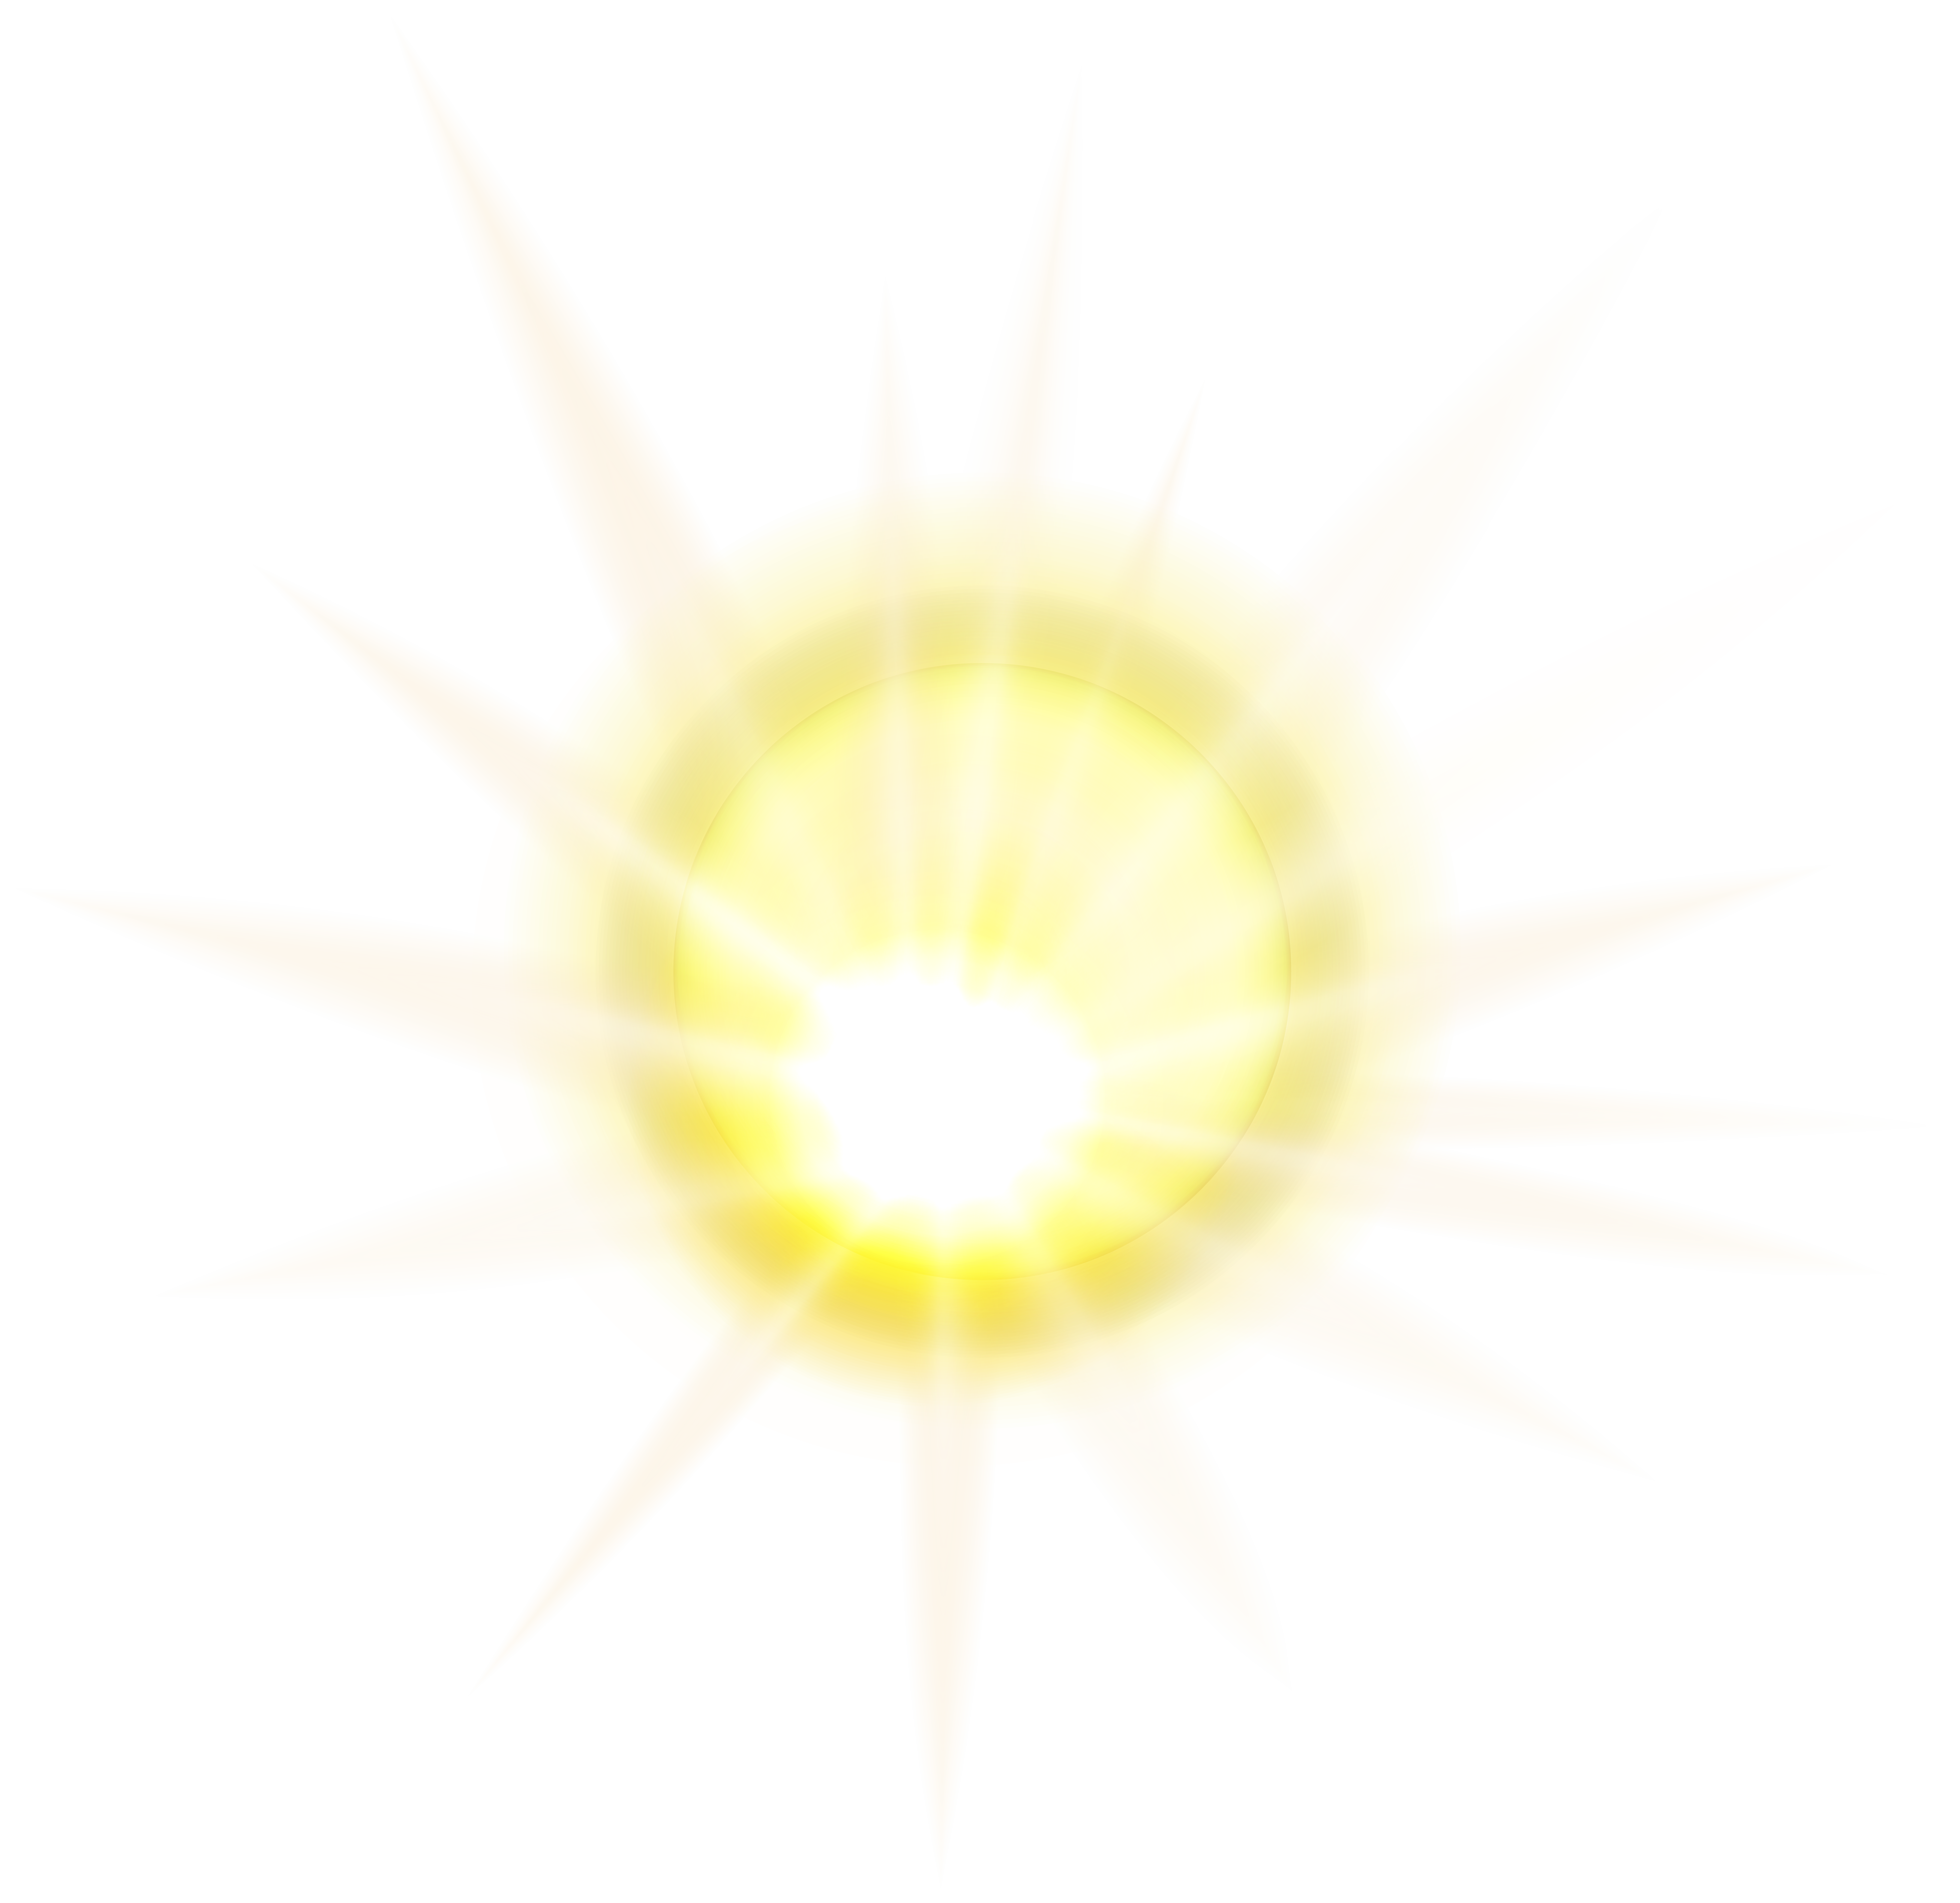 Sun effect png. Clip art image gallery